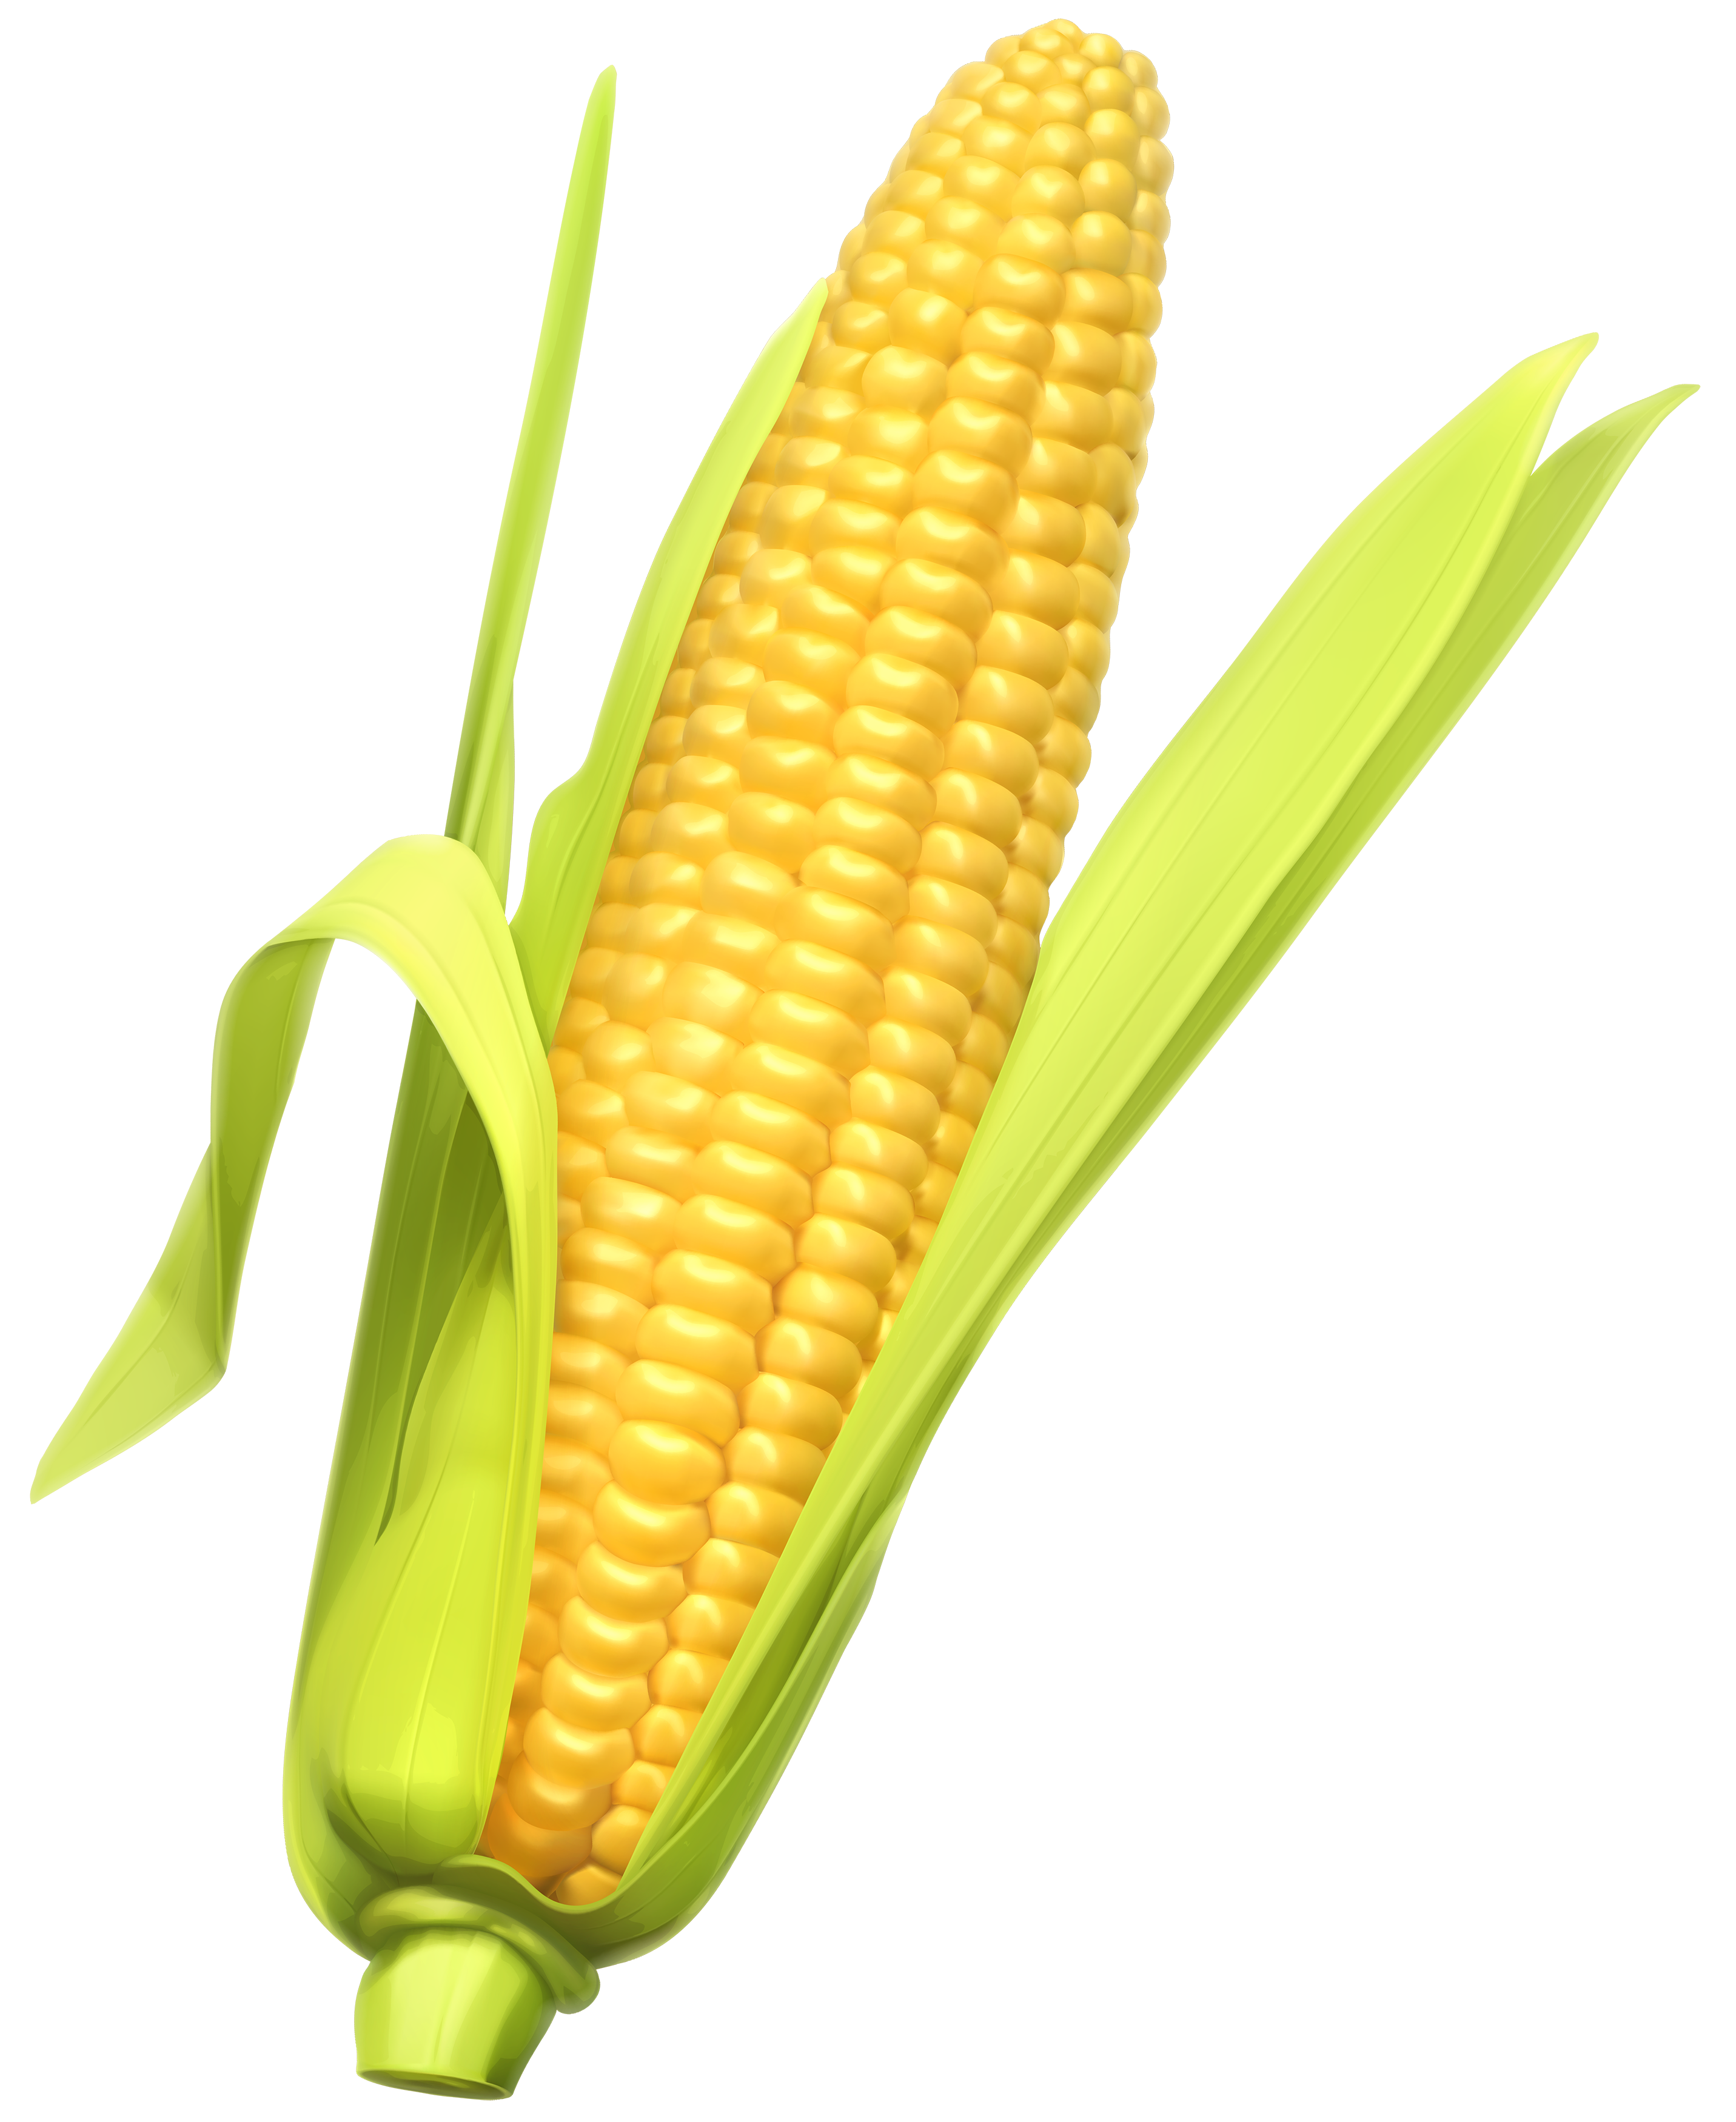 Corn clipart #1, Download drawings